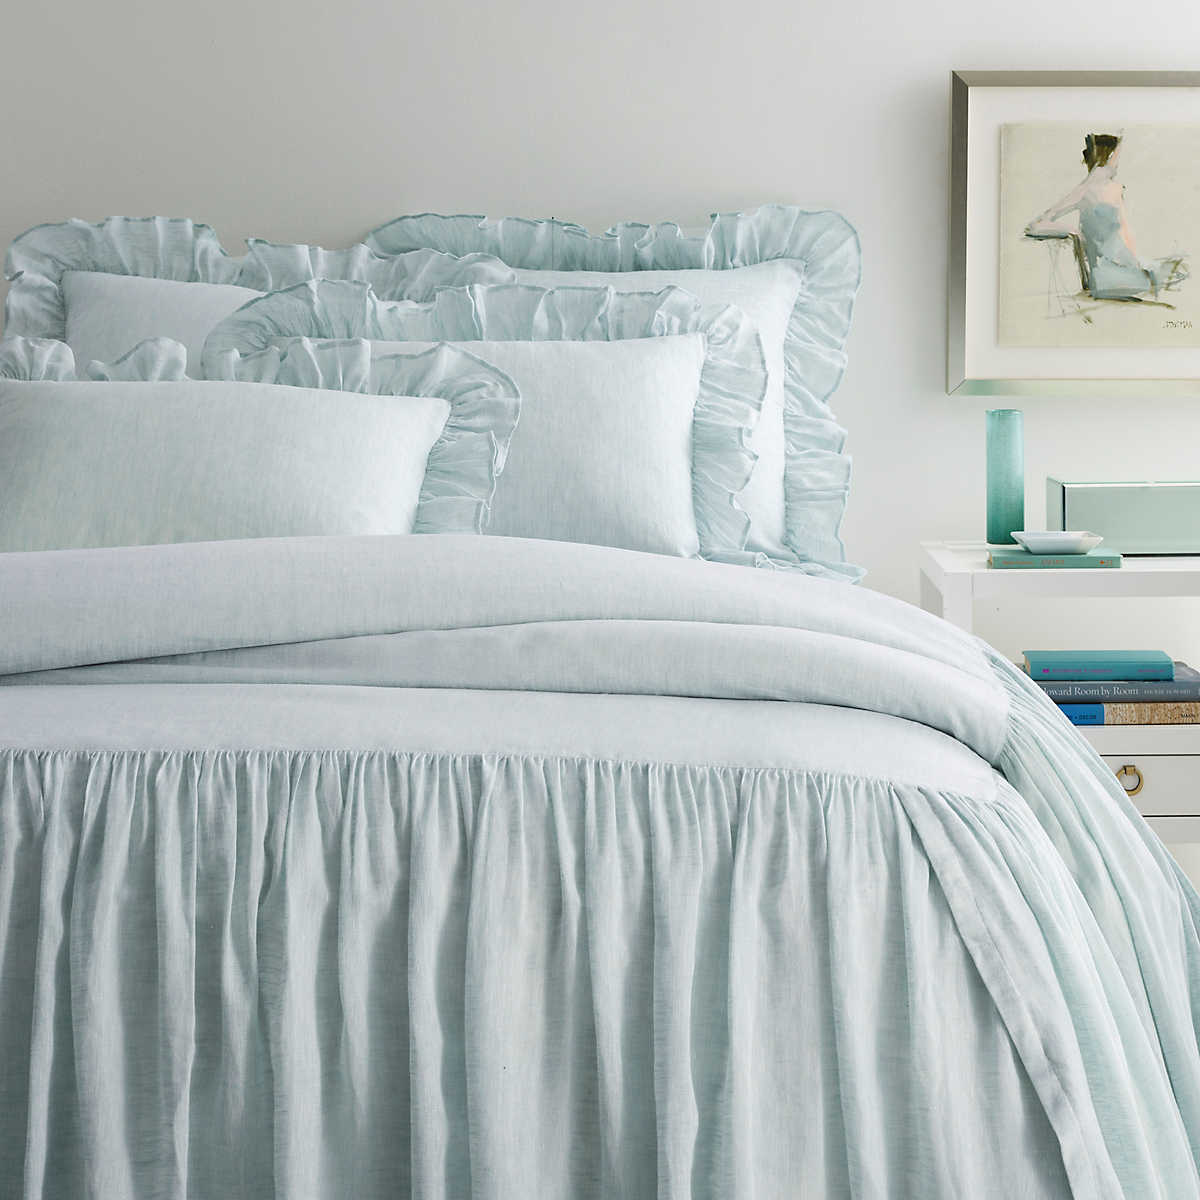 Savannah Linen Chambray Sky Bedspread Pine Cone Hill